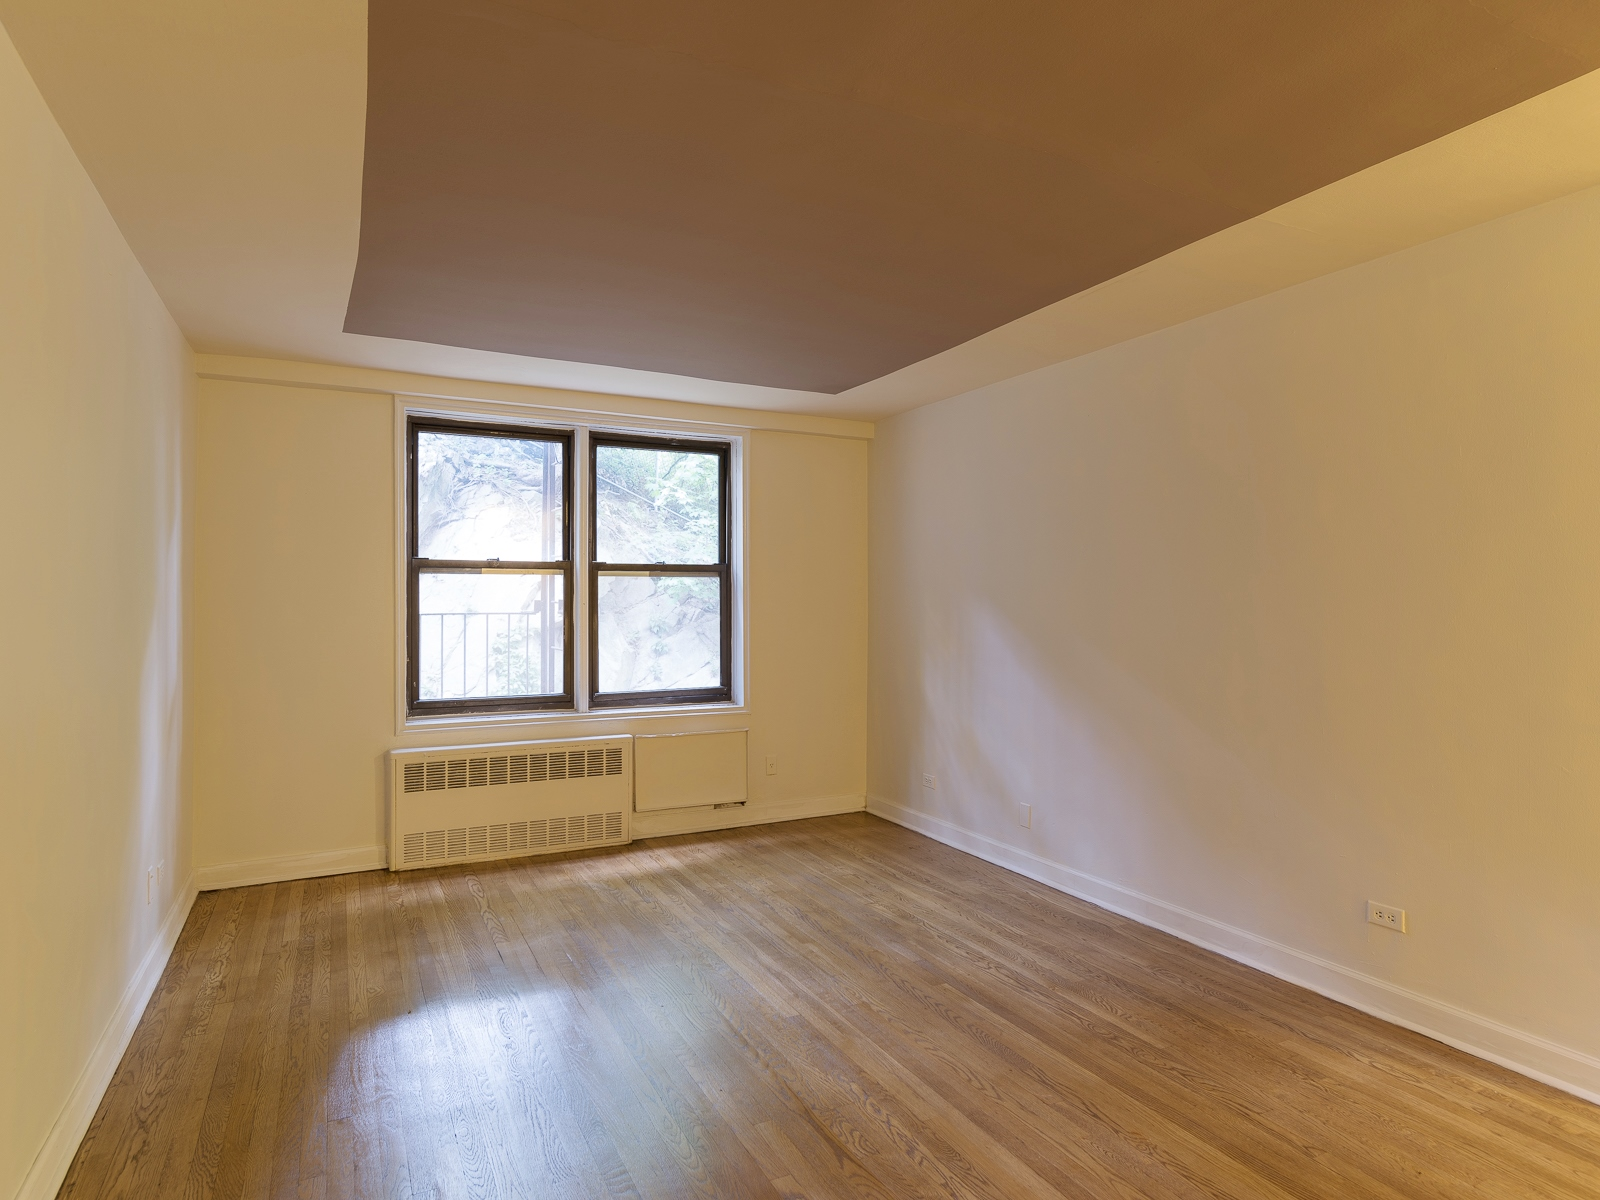 Co-op for Sale at Beautiful and Renovated 1 BR 5235 Post Road 2C Riverdale, New York 10471 United States